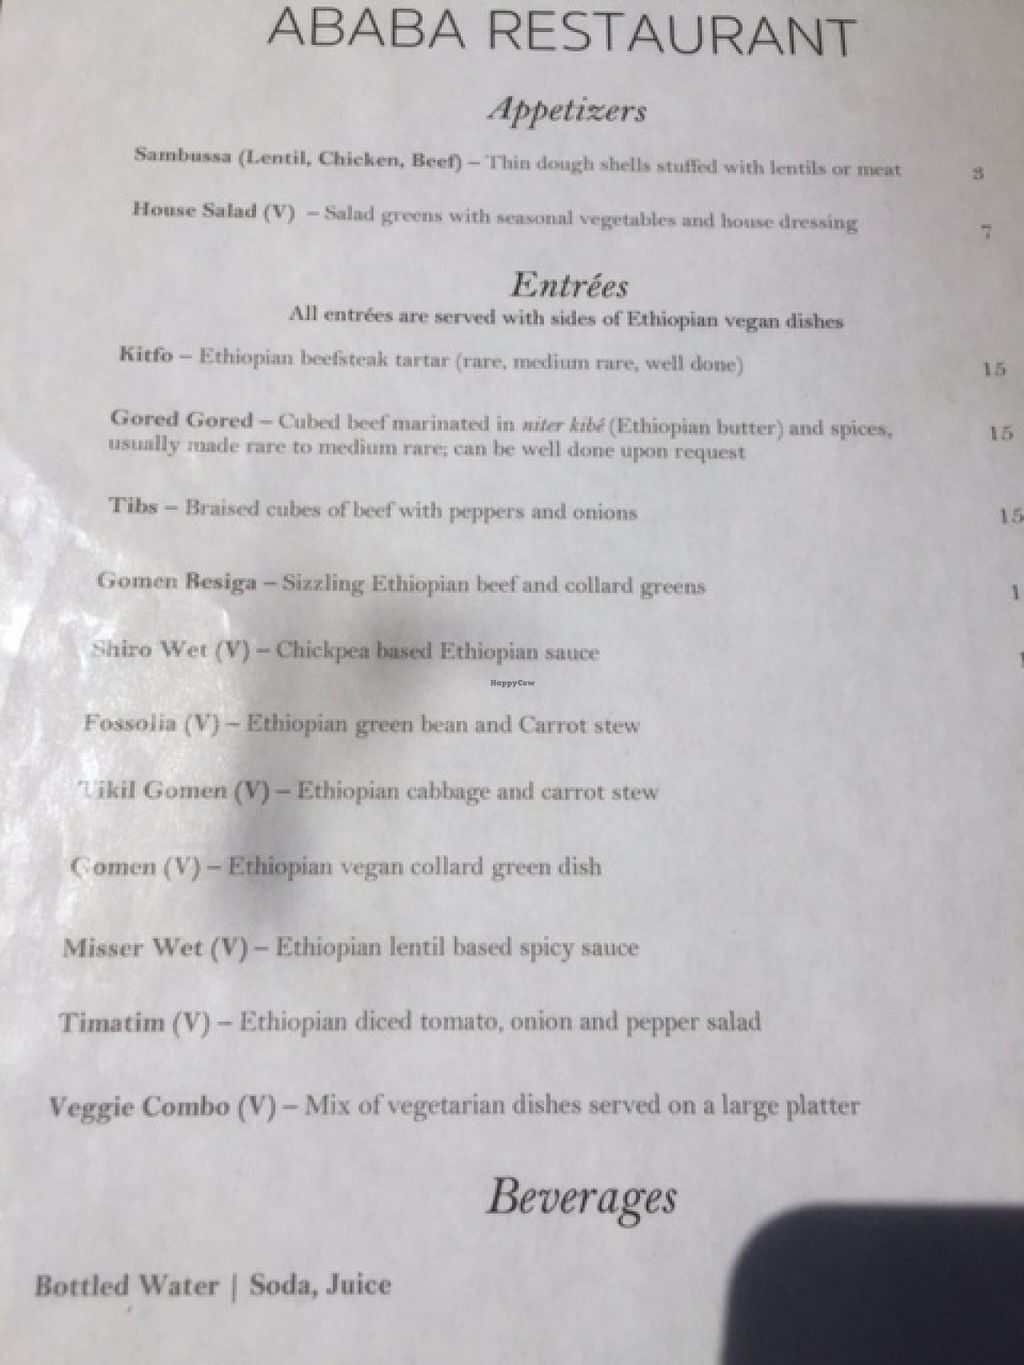 """Photo of Ababa  by <a href=""""/members/profile/kcontini"""">kcontini</a> <br/>Menu with vegan options clearly marked (but they sometimes have vegan specials not listed here, like beets or mushrooms).  6 of the 10 entrees are vegan, not counting the veggie combo! <br/> July 13, 2016  - <a href='/contact/abuse/image/76481/159574'>Report</a>"""